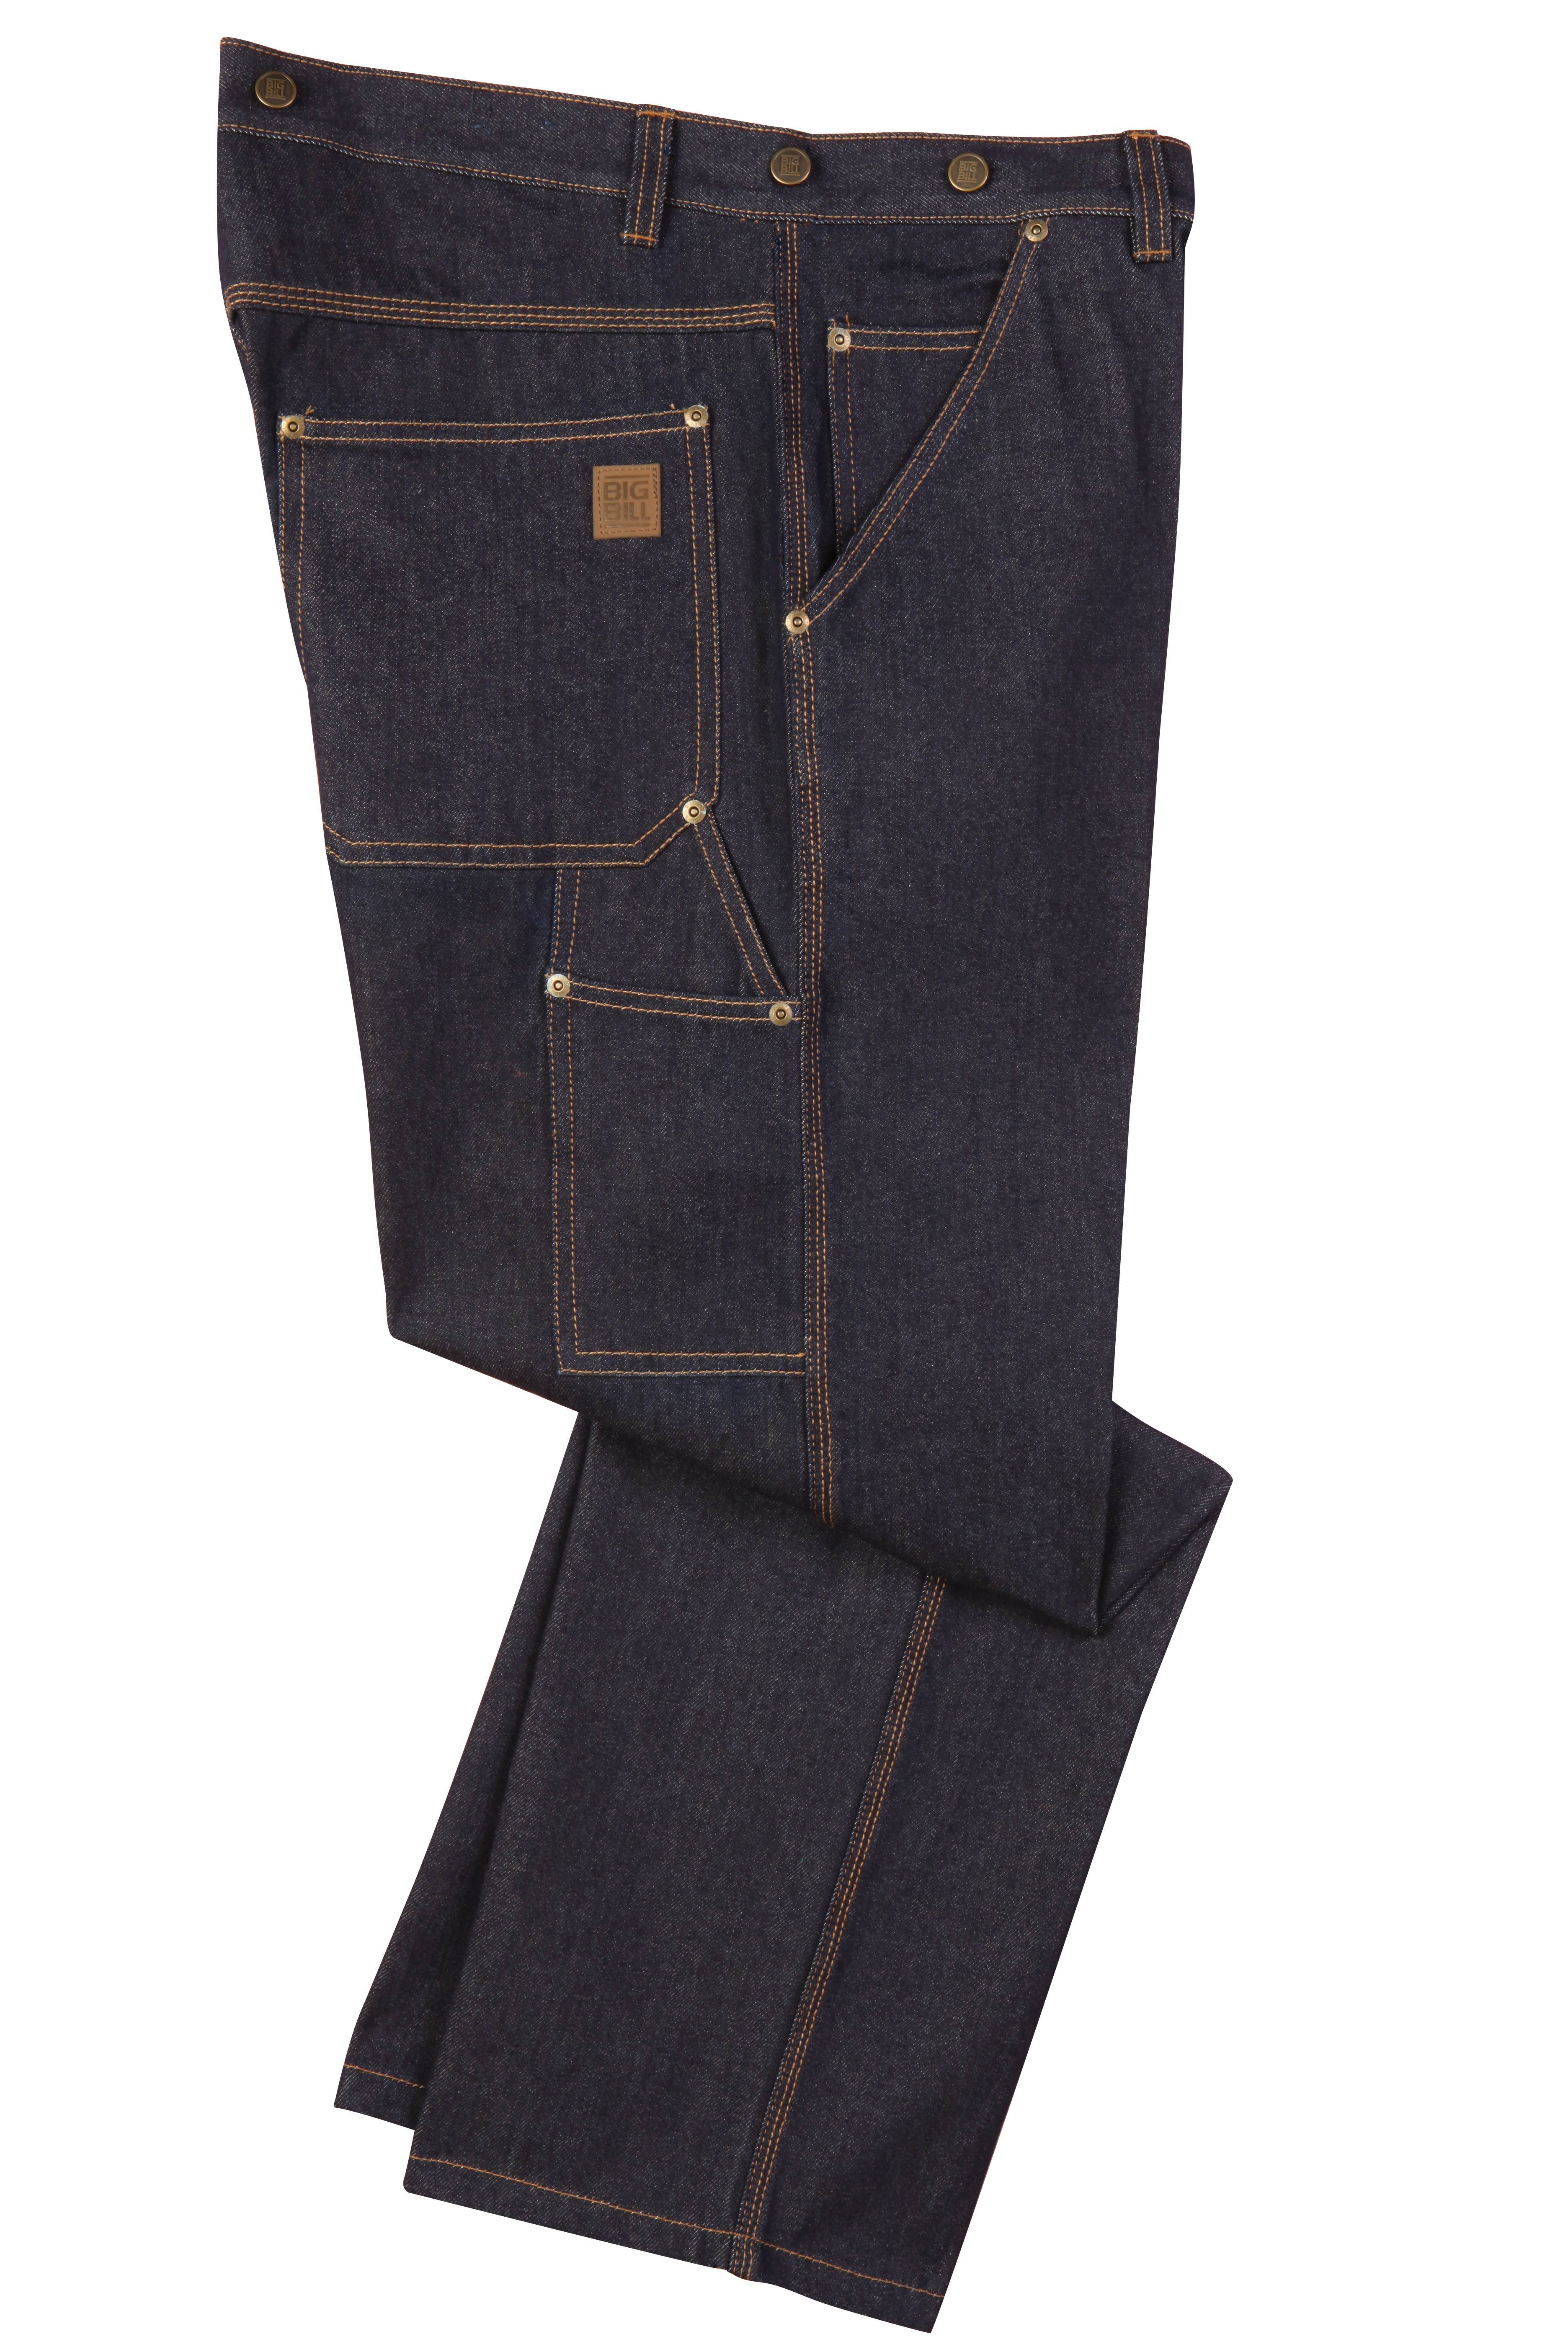 14.75 oz Denim Logger Jeans-BIG BILL